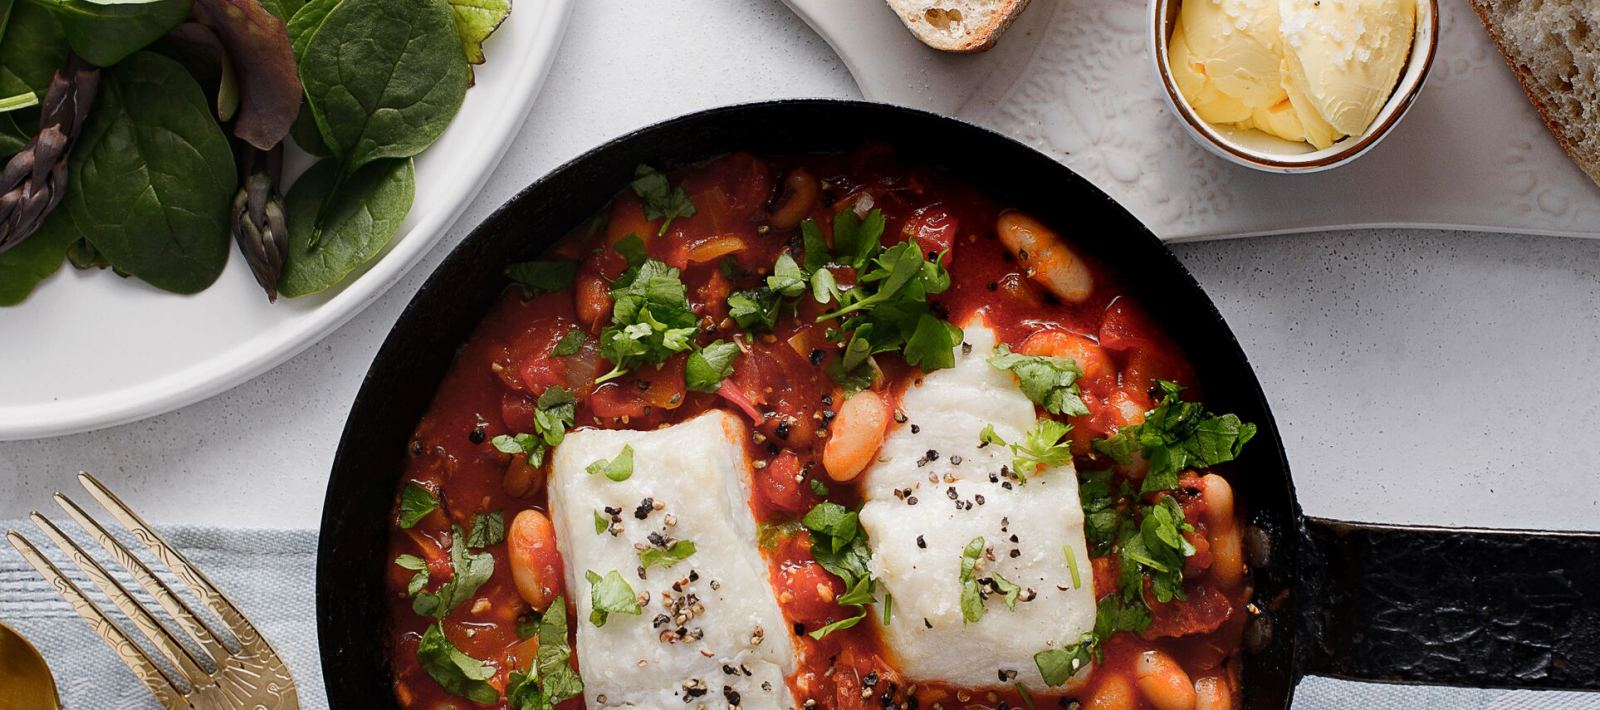 The Lincolnshire Chef Cod and Chorizo Stew recipe for IshFish